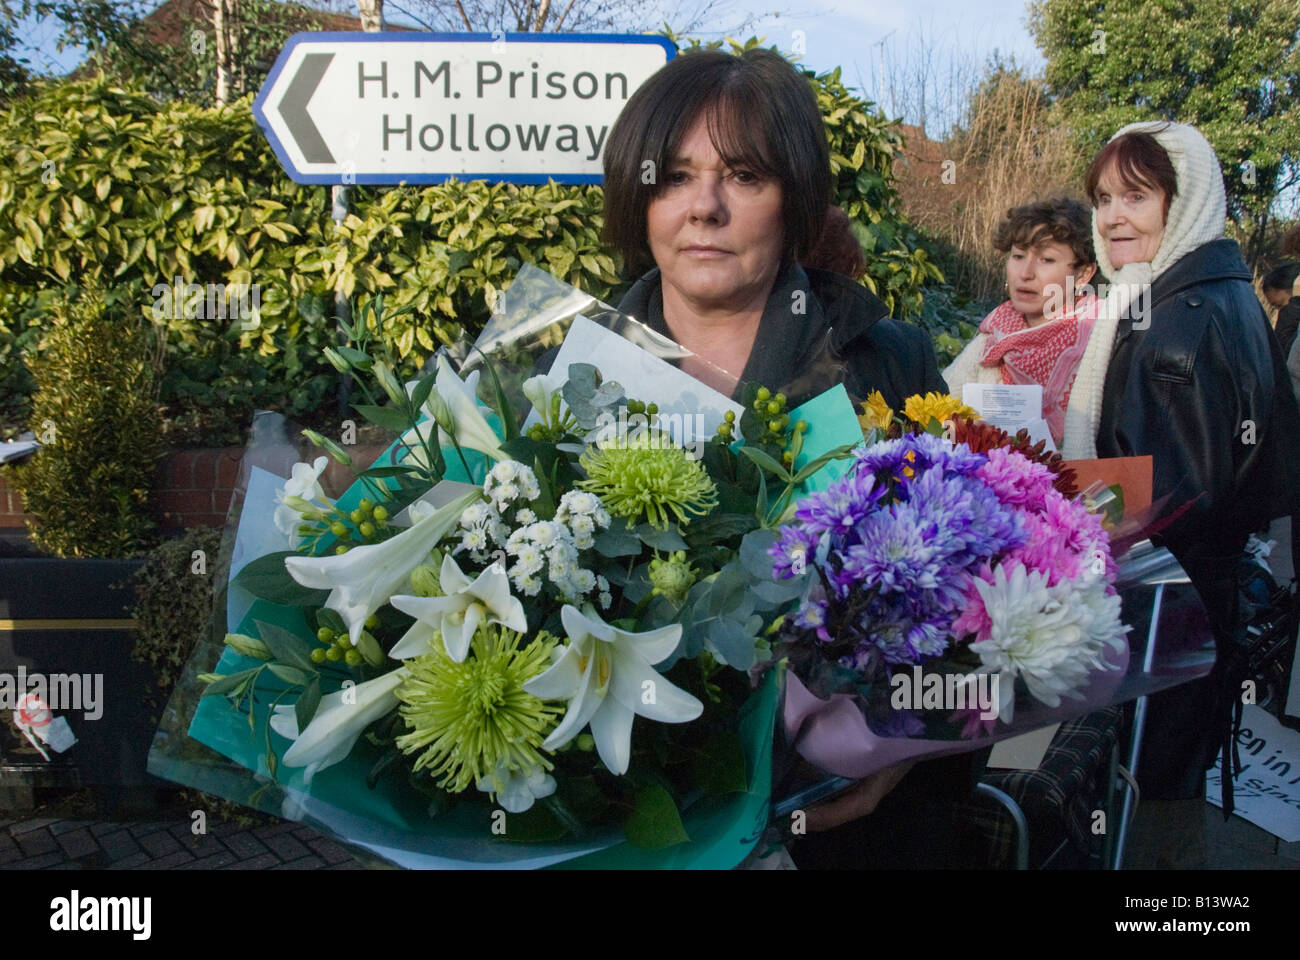 Demonstrators with wreaths outside H M Prison Holloway mourn the death of Jaime Pearce and protest against continuing - Stock Image